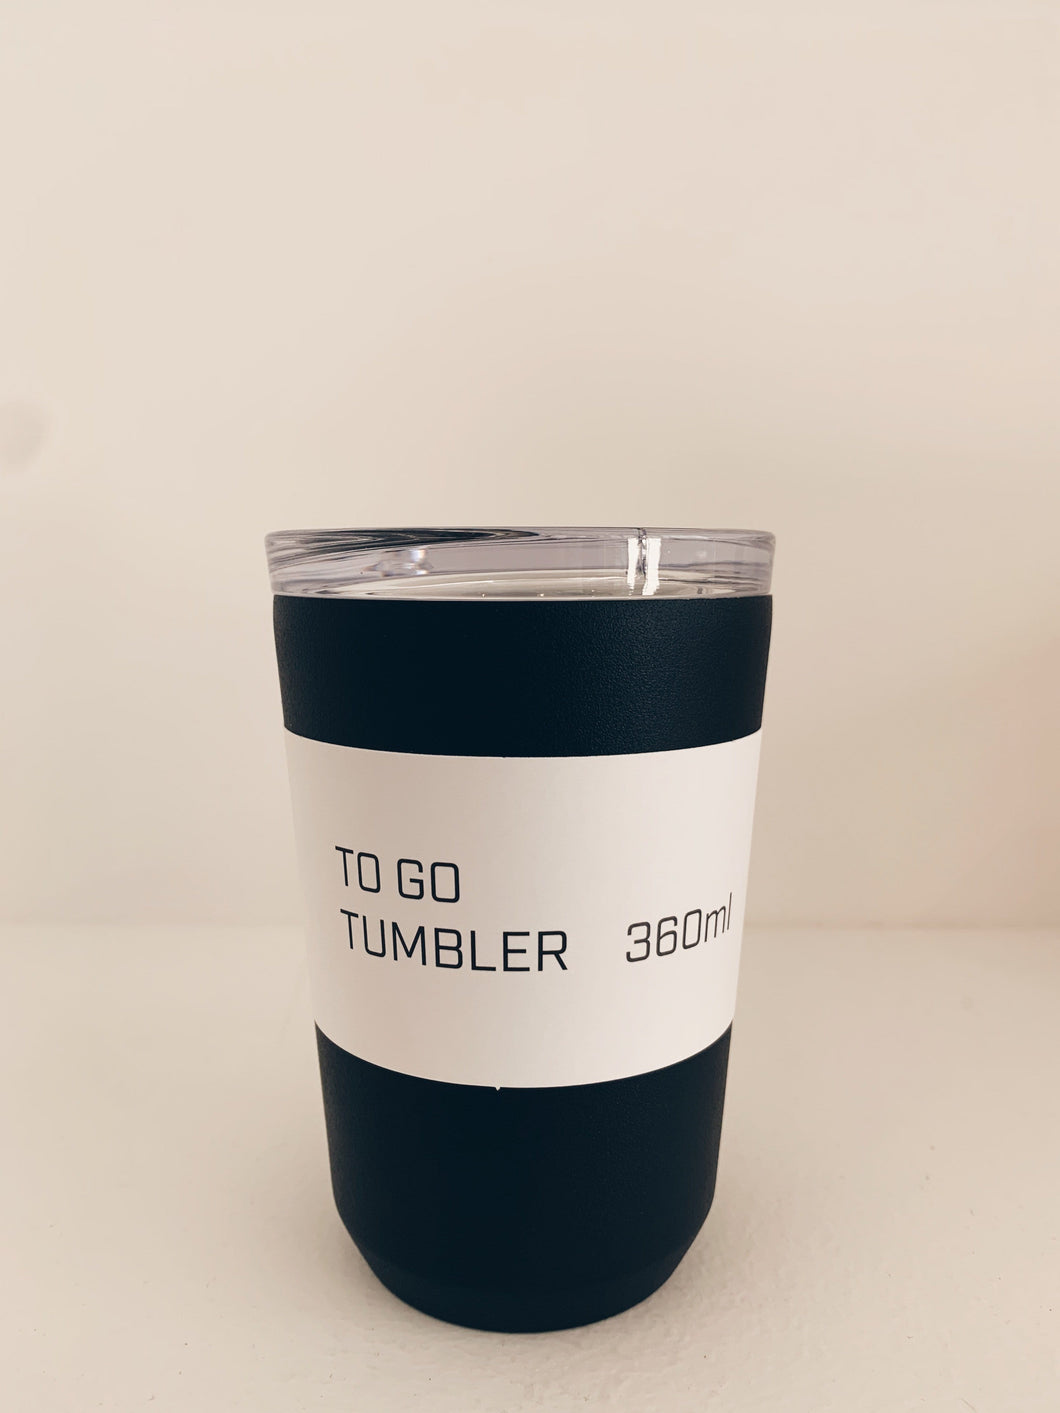 To go Tumbler Noir 360ML - KINTO